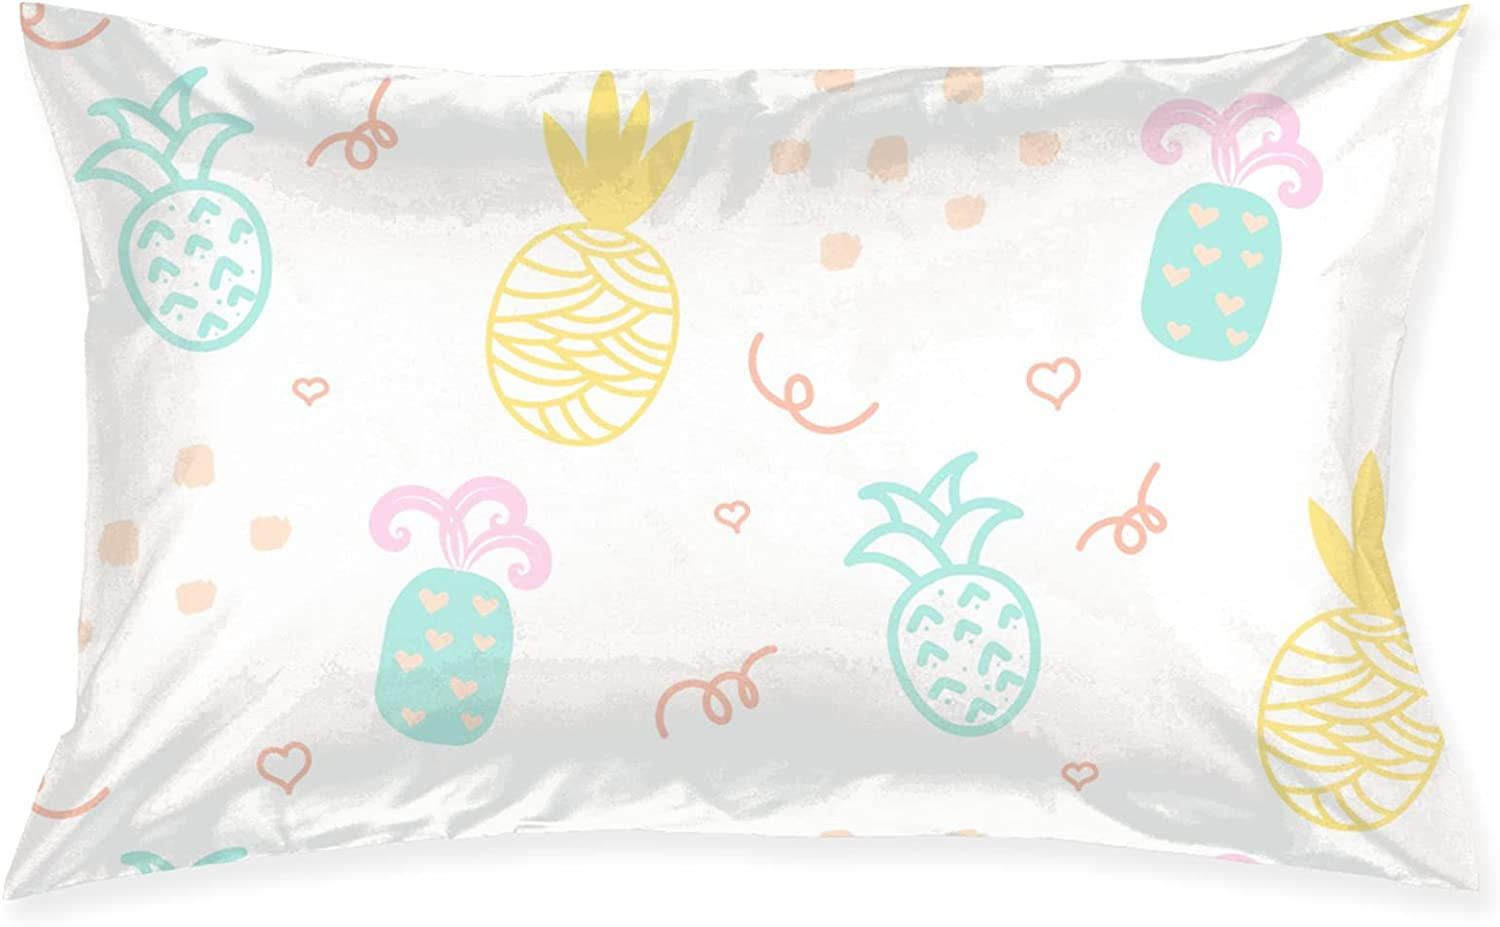 Colored Pineapple Max 52% OFF sale Pillows Pillowcase Bed Sleeping Pillow